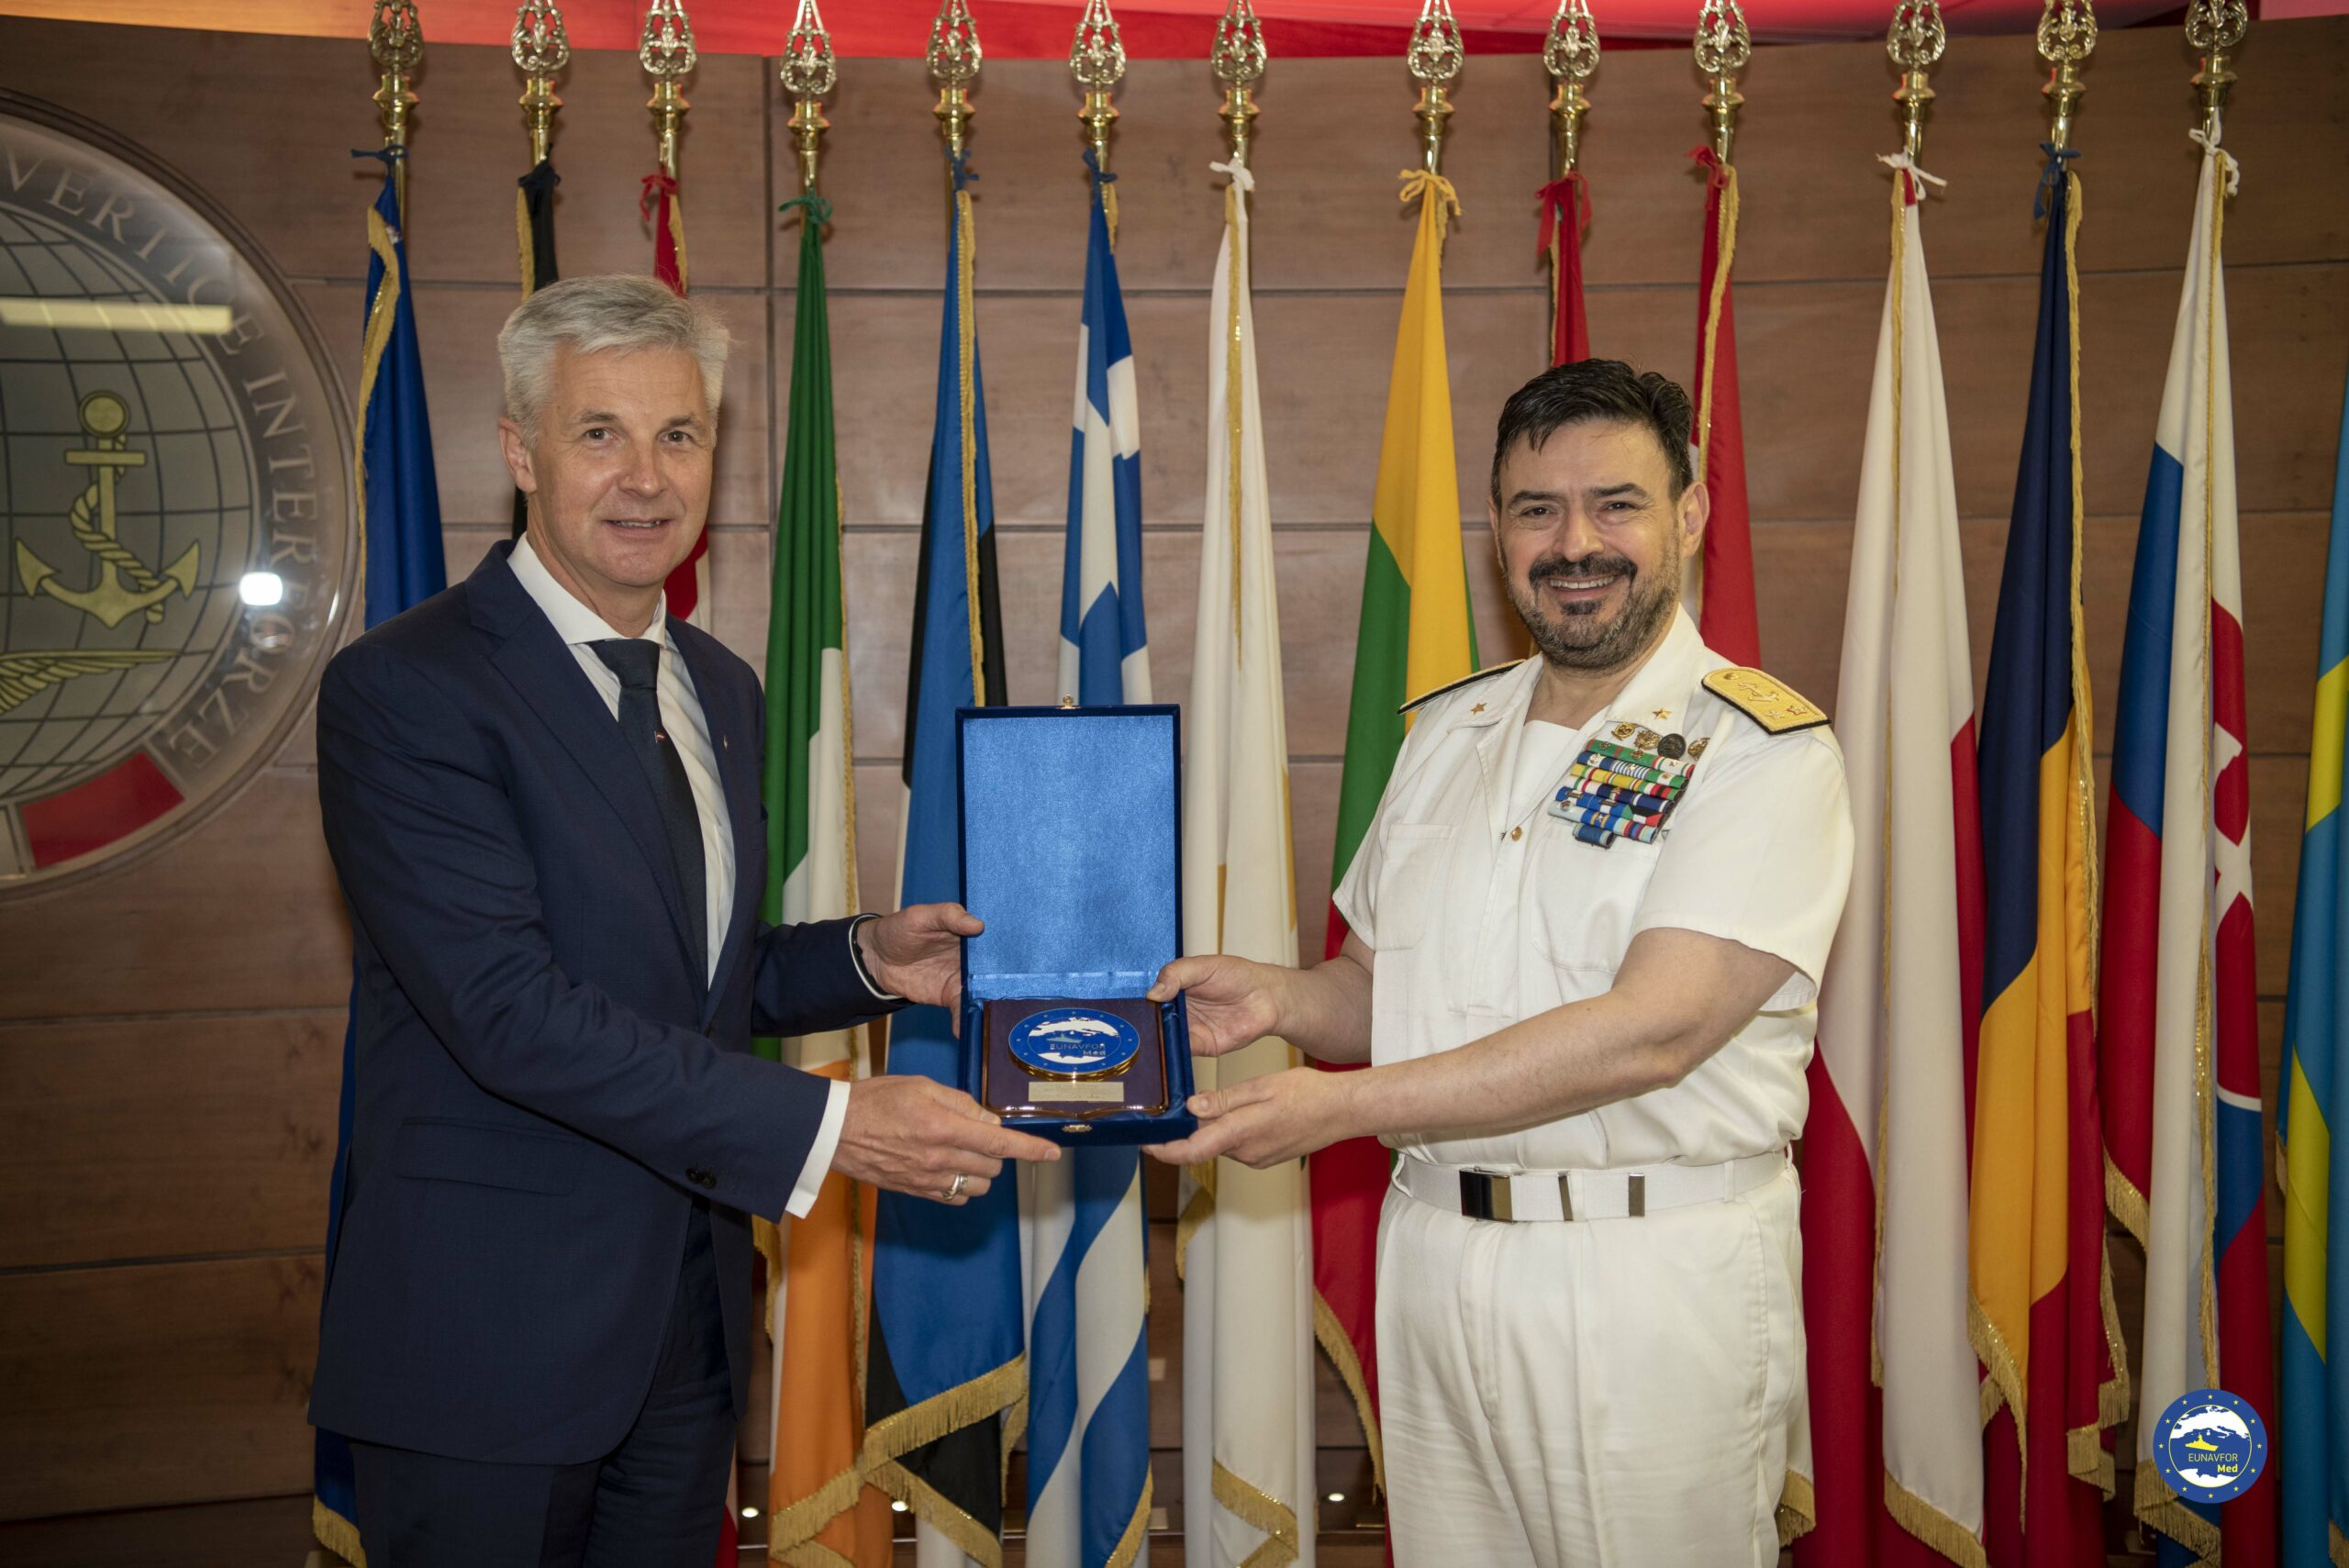 The Deputy Prime Minister and Minister of Defence of the Republic of Latvia Dr. Artis Pabriks visited Irini's headquarters